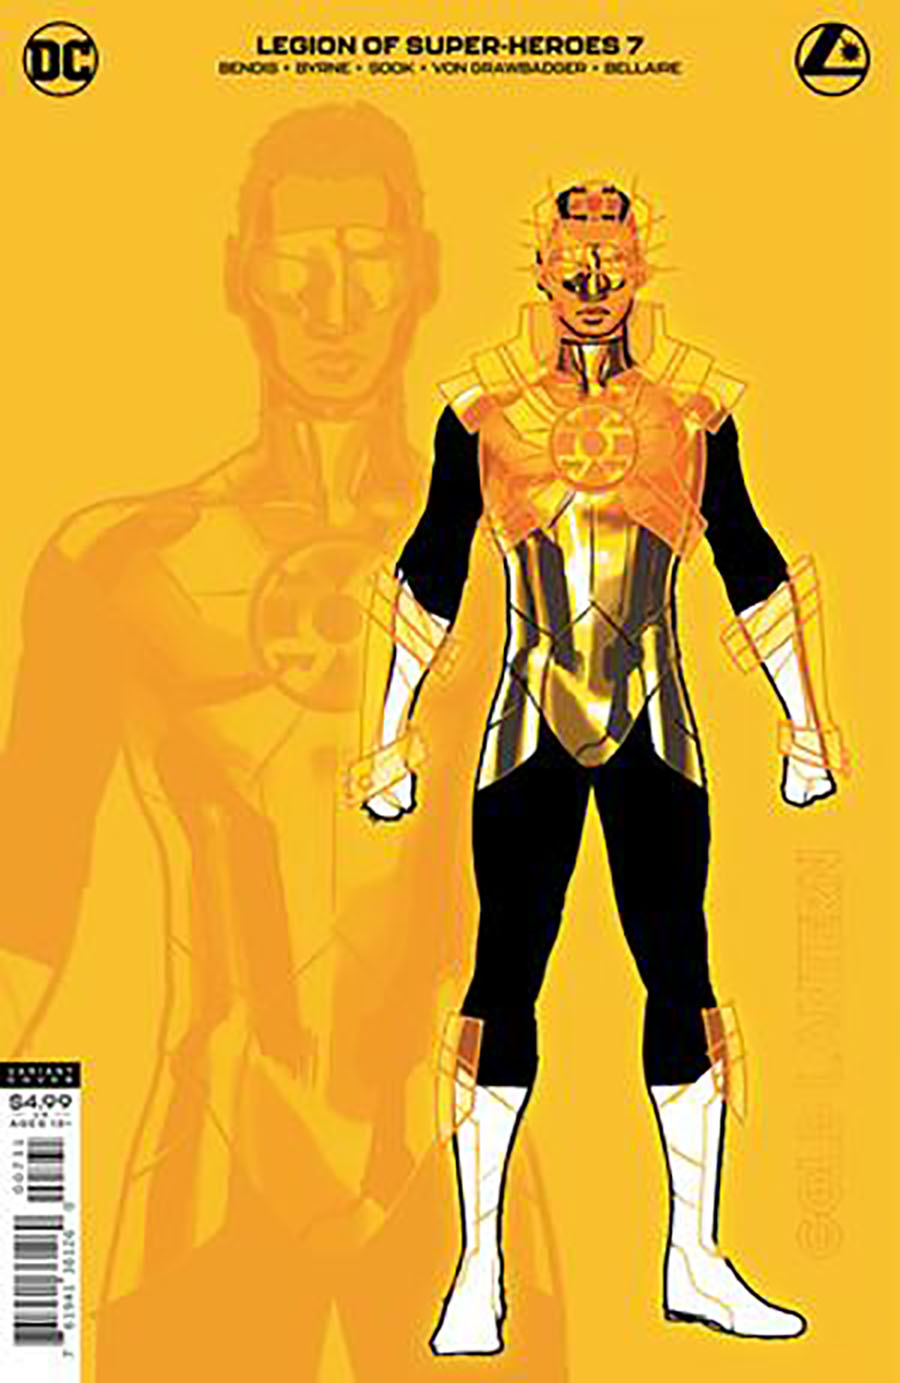 Legion Of Super-Heroes Vol 8 #7 Cover C Incentive Ryan Sook Gold Lantern Card Stock Variant Cover